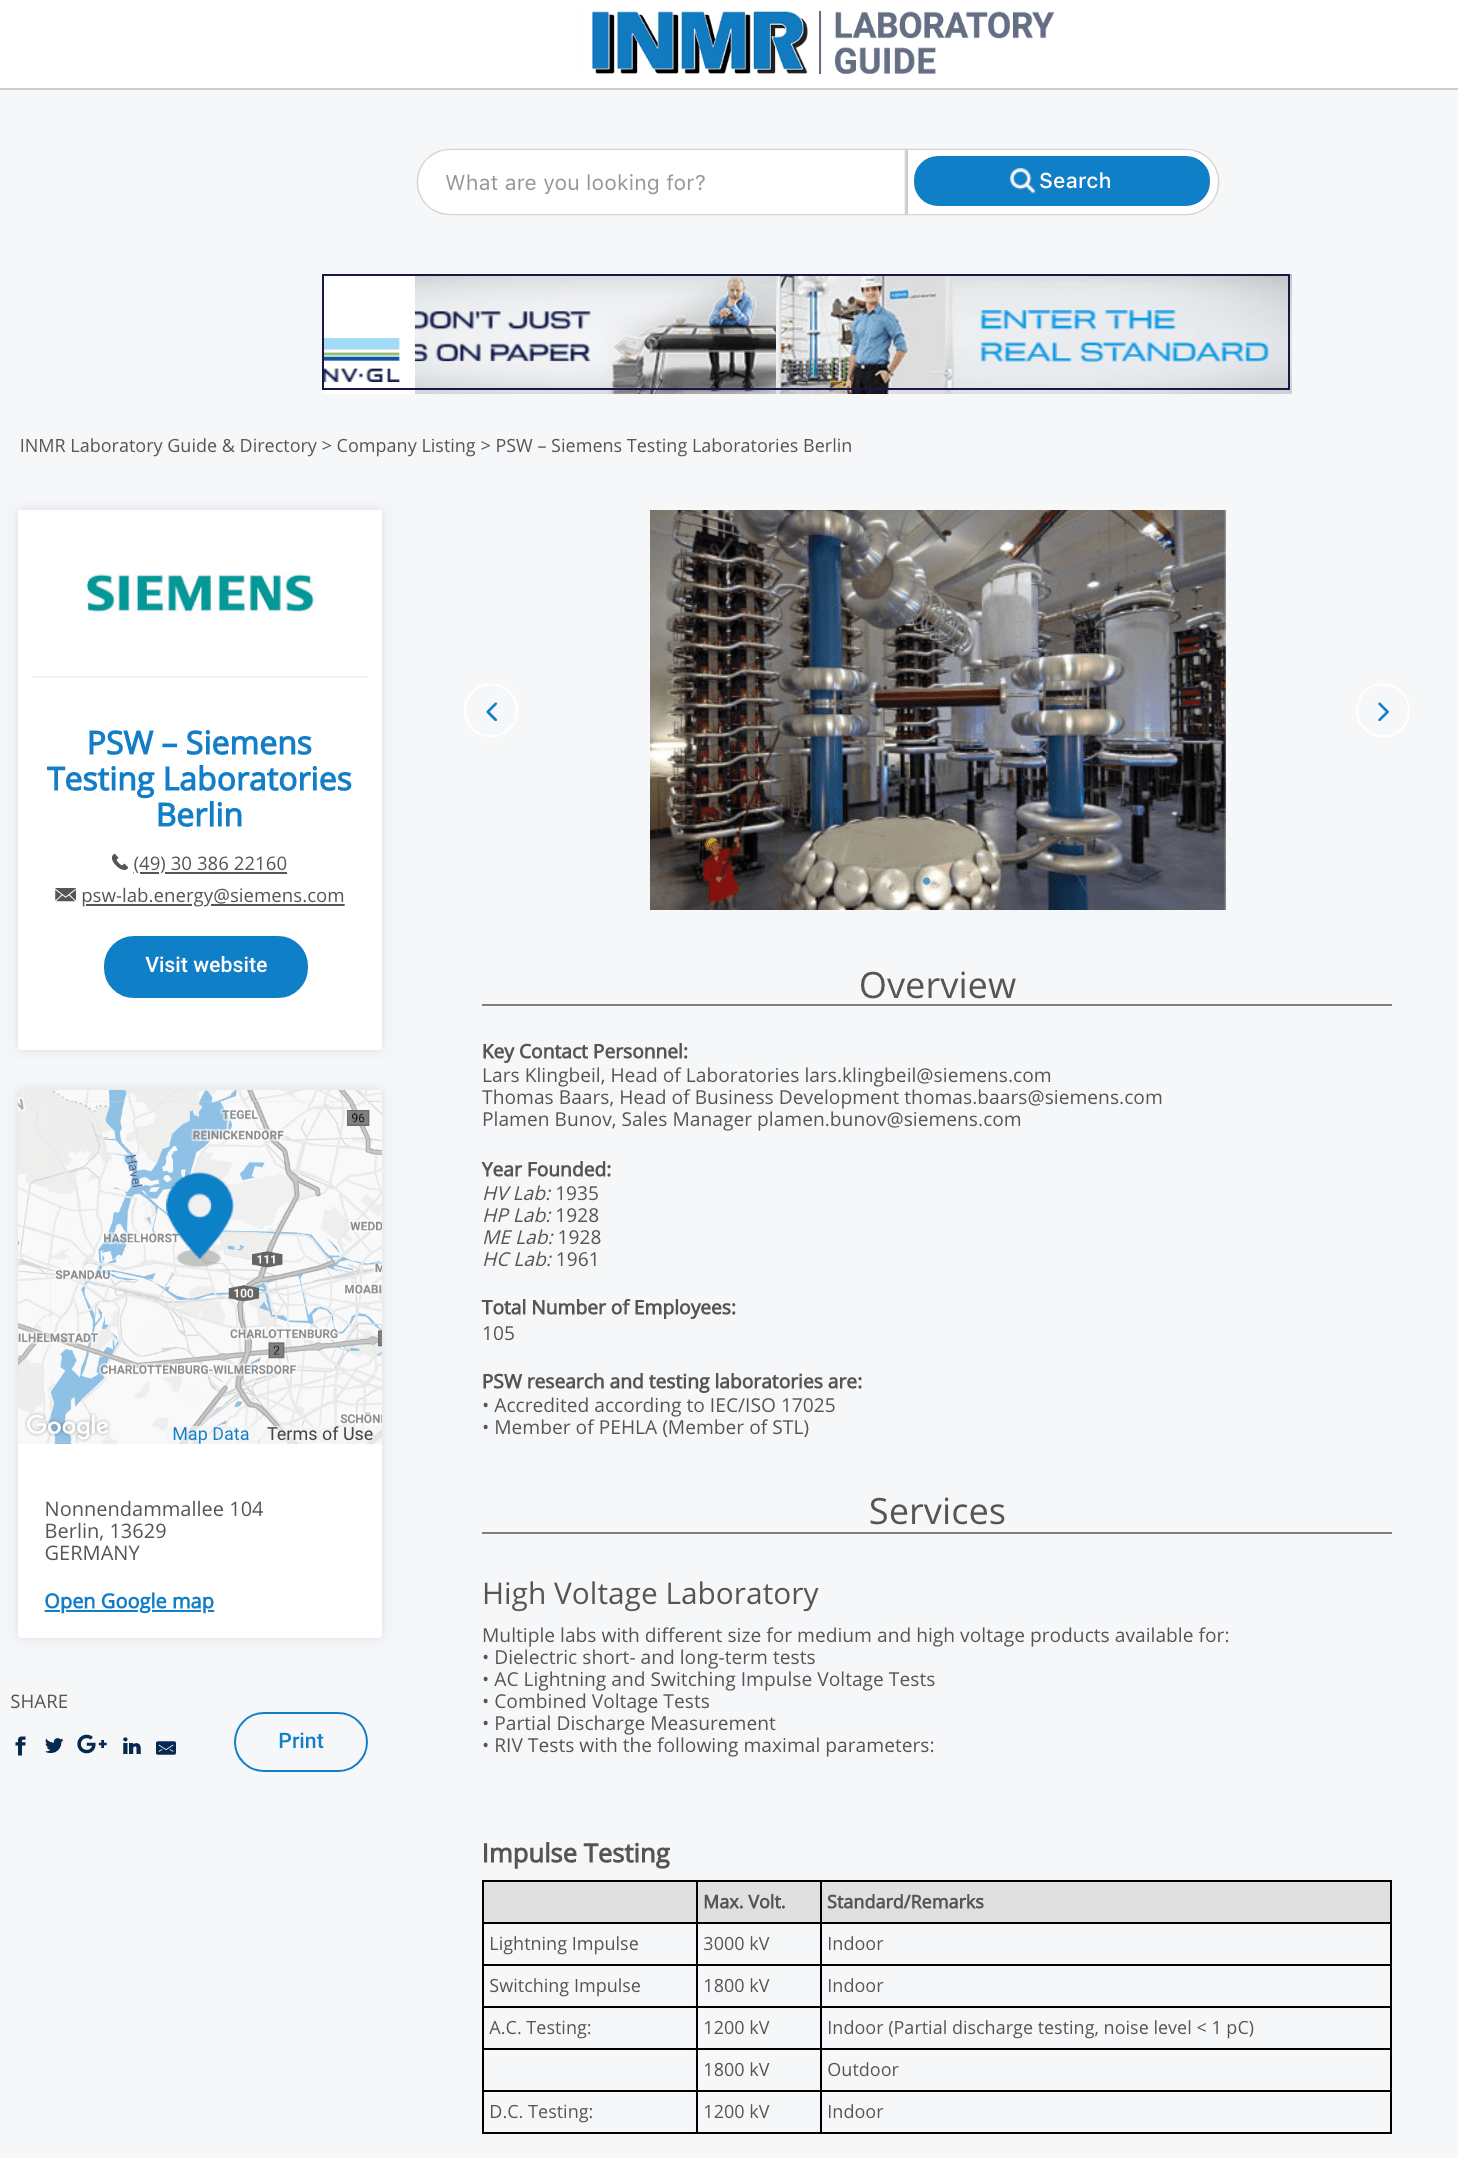 www.INMRLABORATORYGUIDE.com Helps Manufacturers & Users of Equipment Select Qualified HV & HP Test Laboratories INMR LABORATORY GUIDE 1